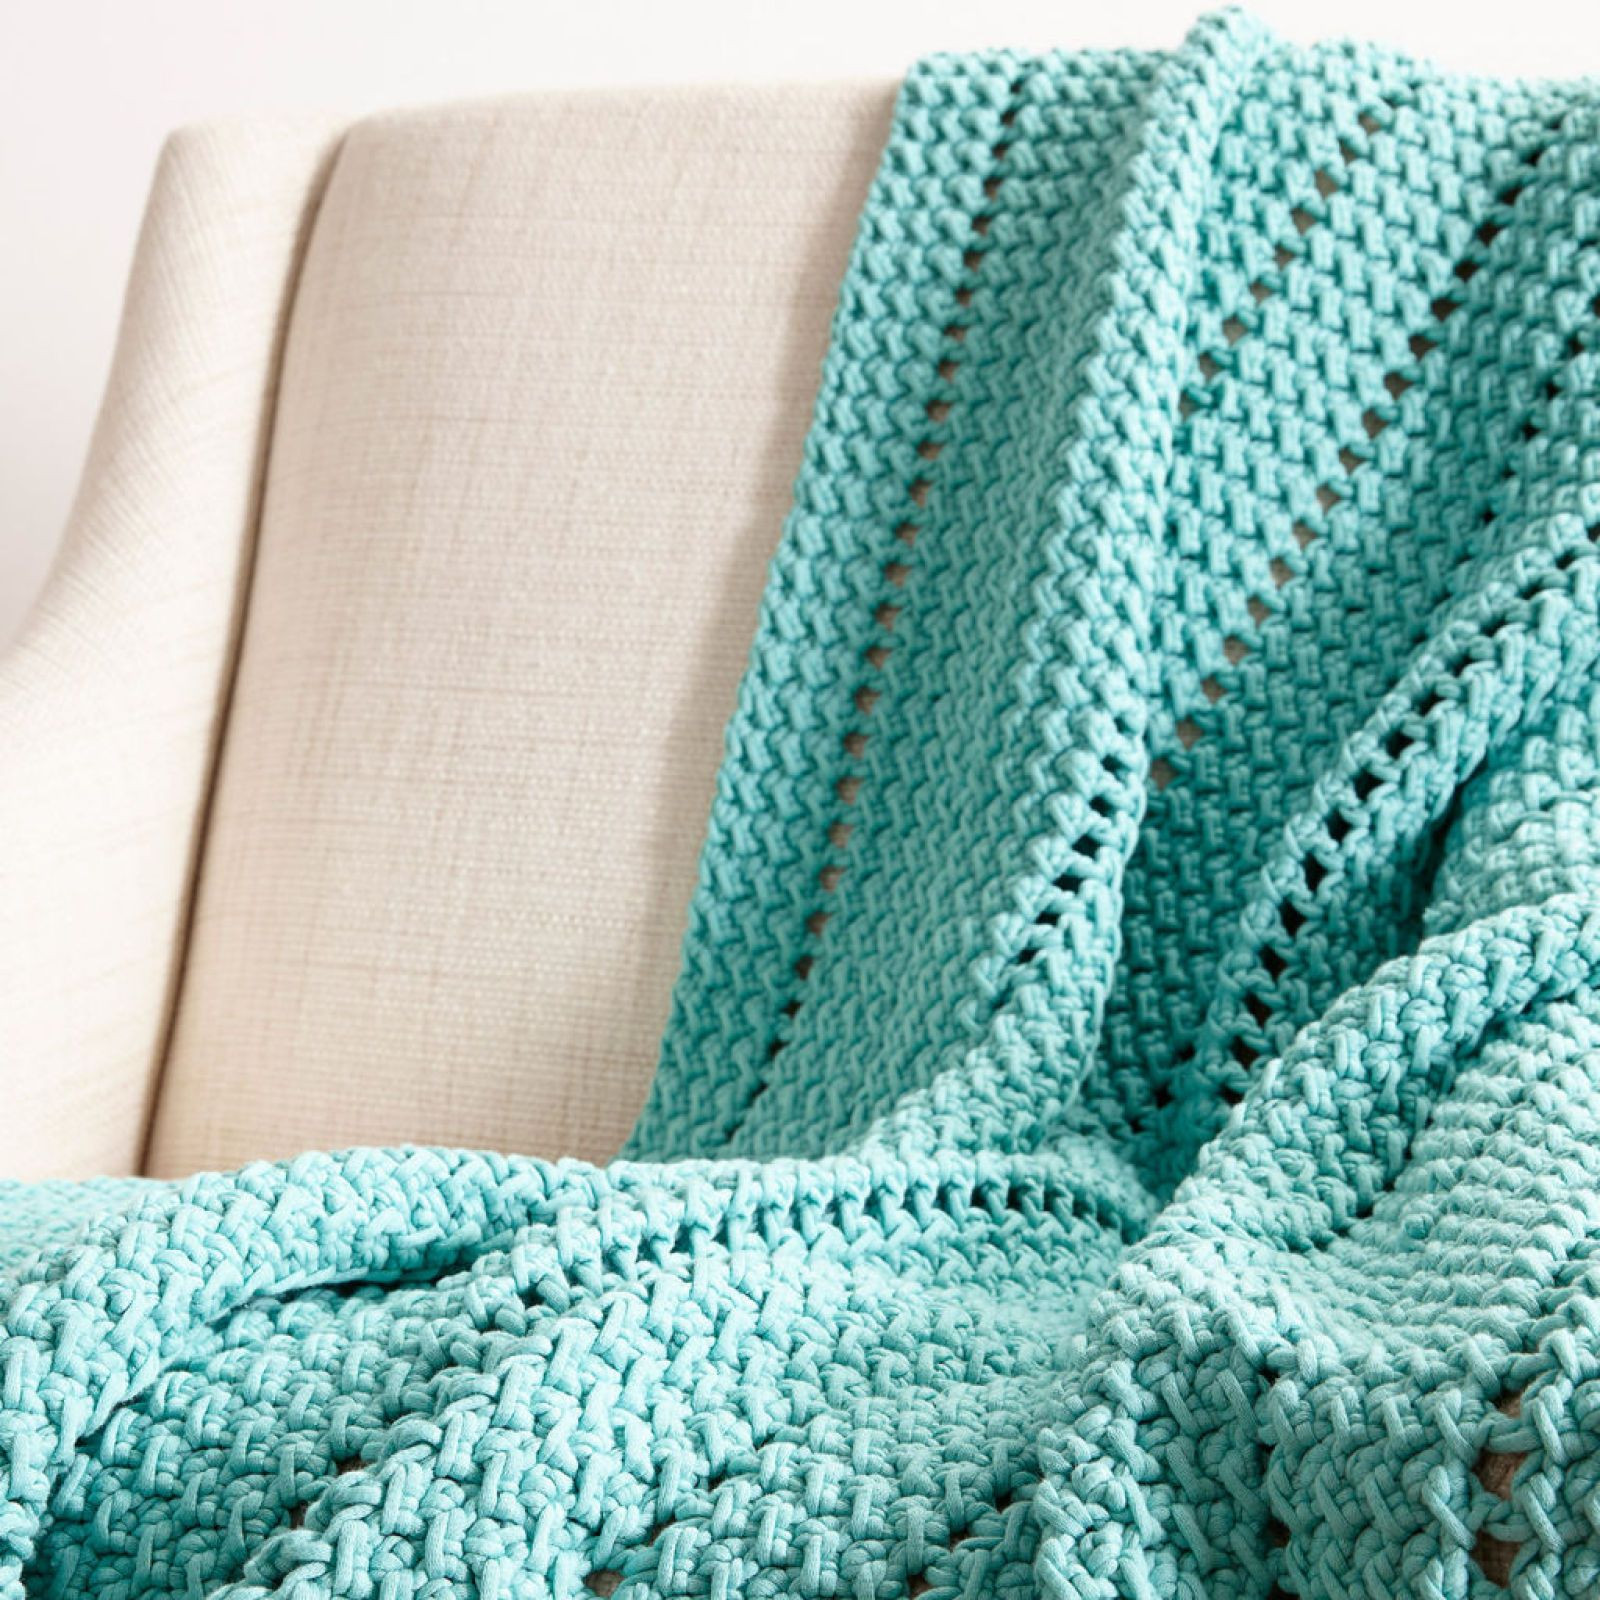 Bernat Crochet Blanket Best Of Free Crochet Afghan Pattern Bernat Maker Home Dec Of Incredible 49 Images Bernat Crochet Blanket